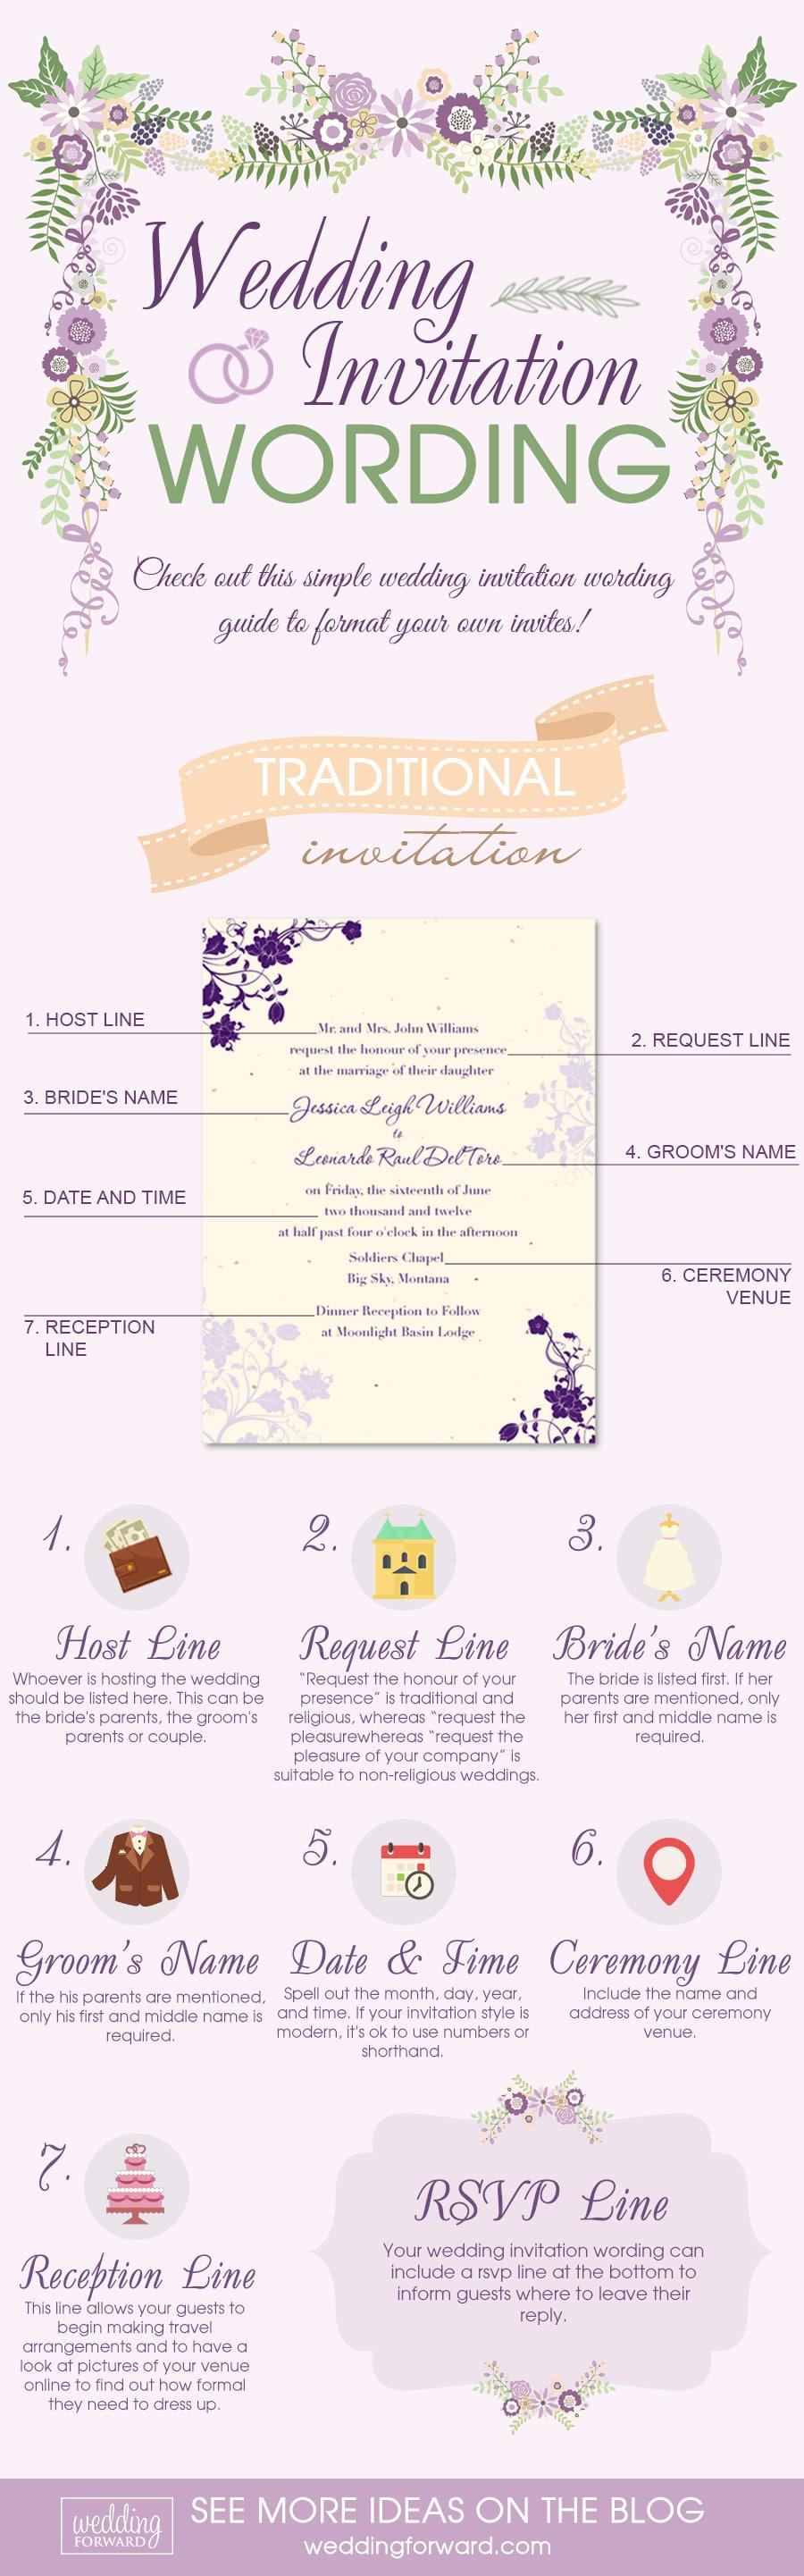 wedding invitation wording guide infographic